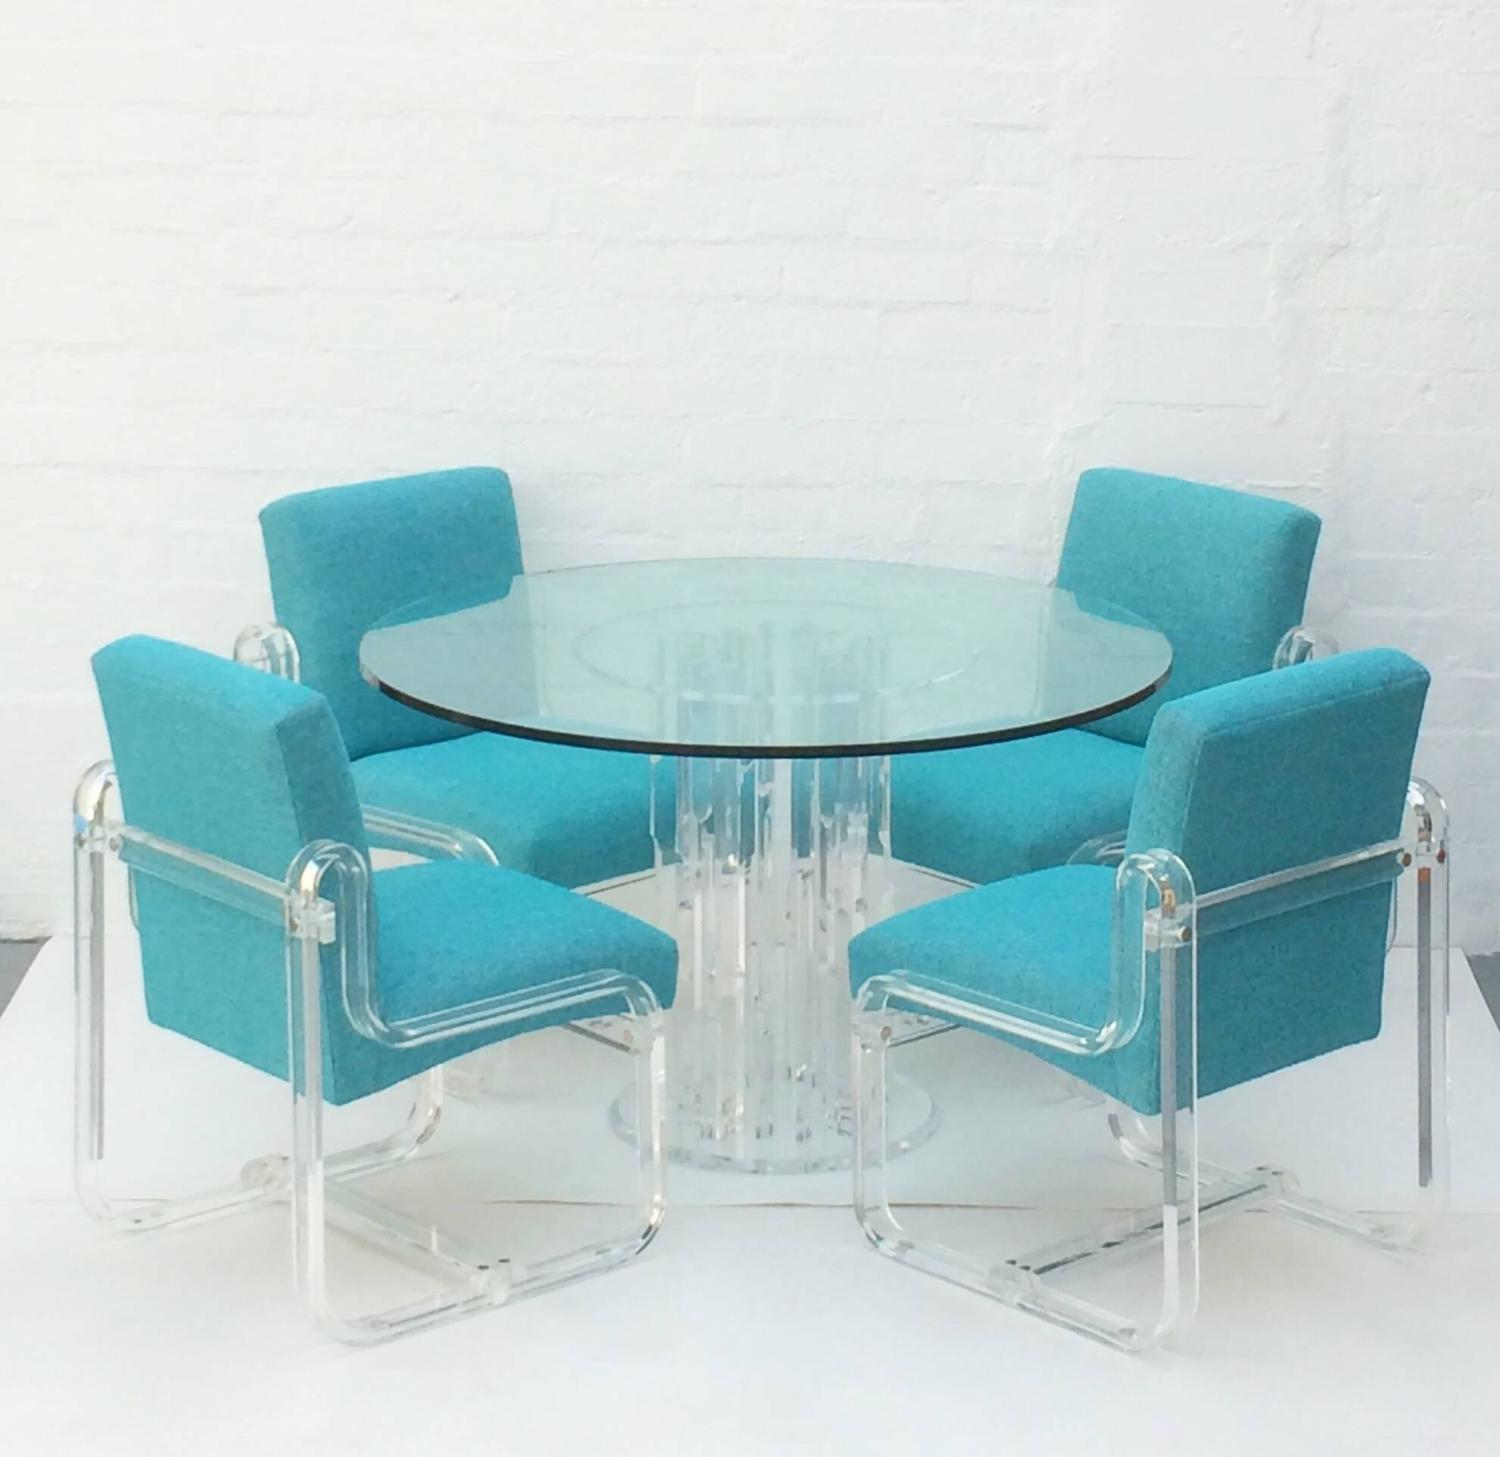 set of four acrylic dining chairs by vivid for sale at 1stdibs. Black Bedroom Furniture Sets. Home Design Ideas